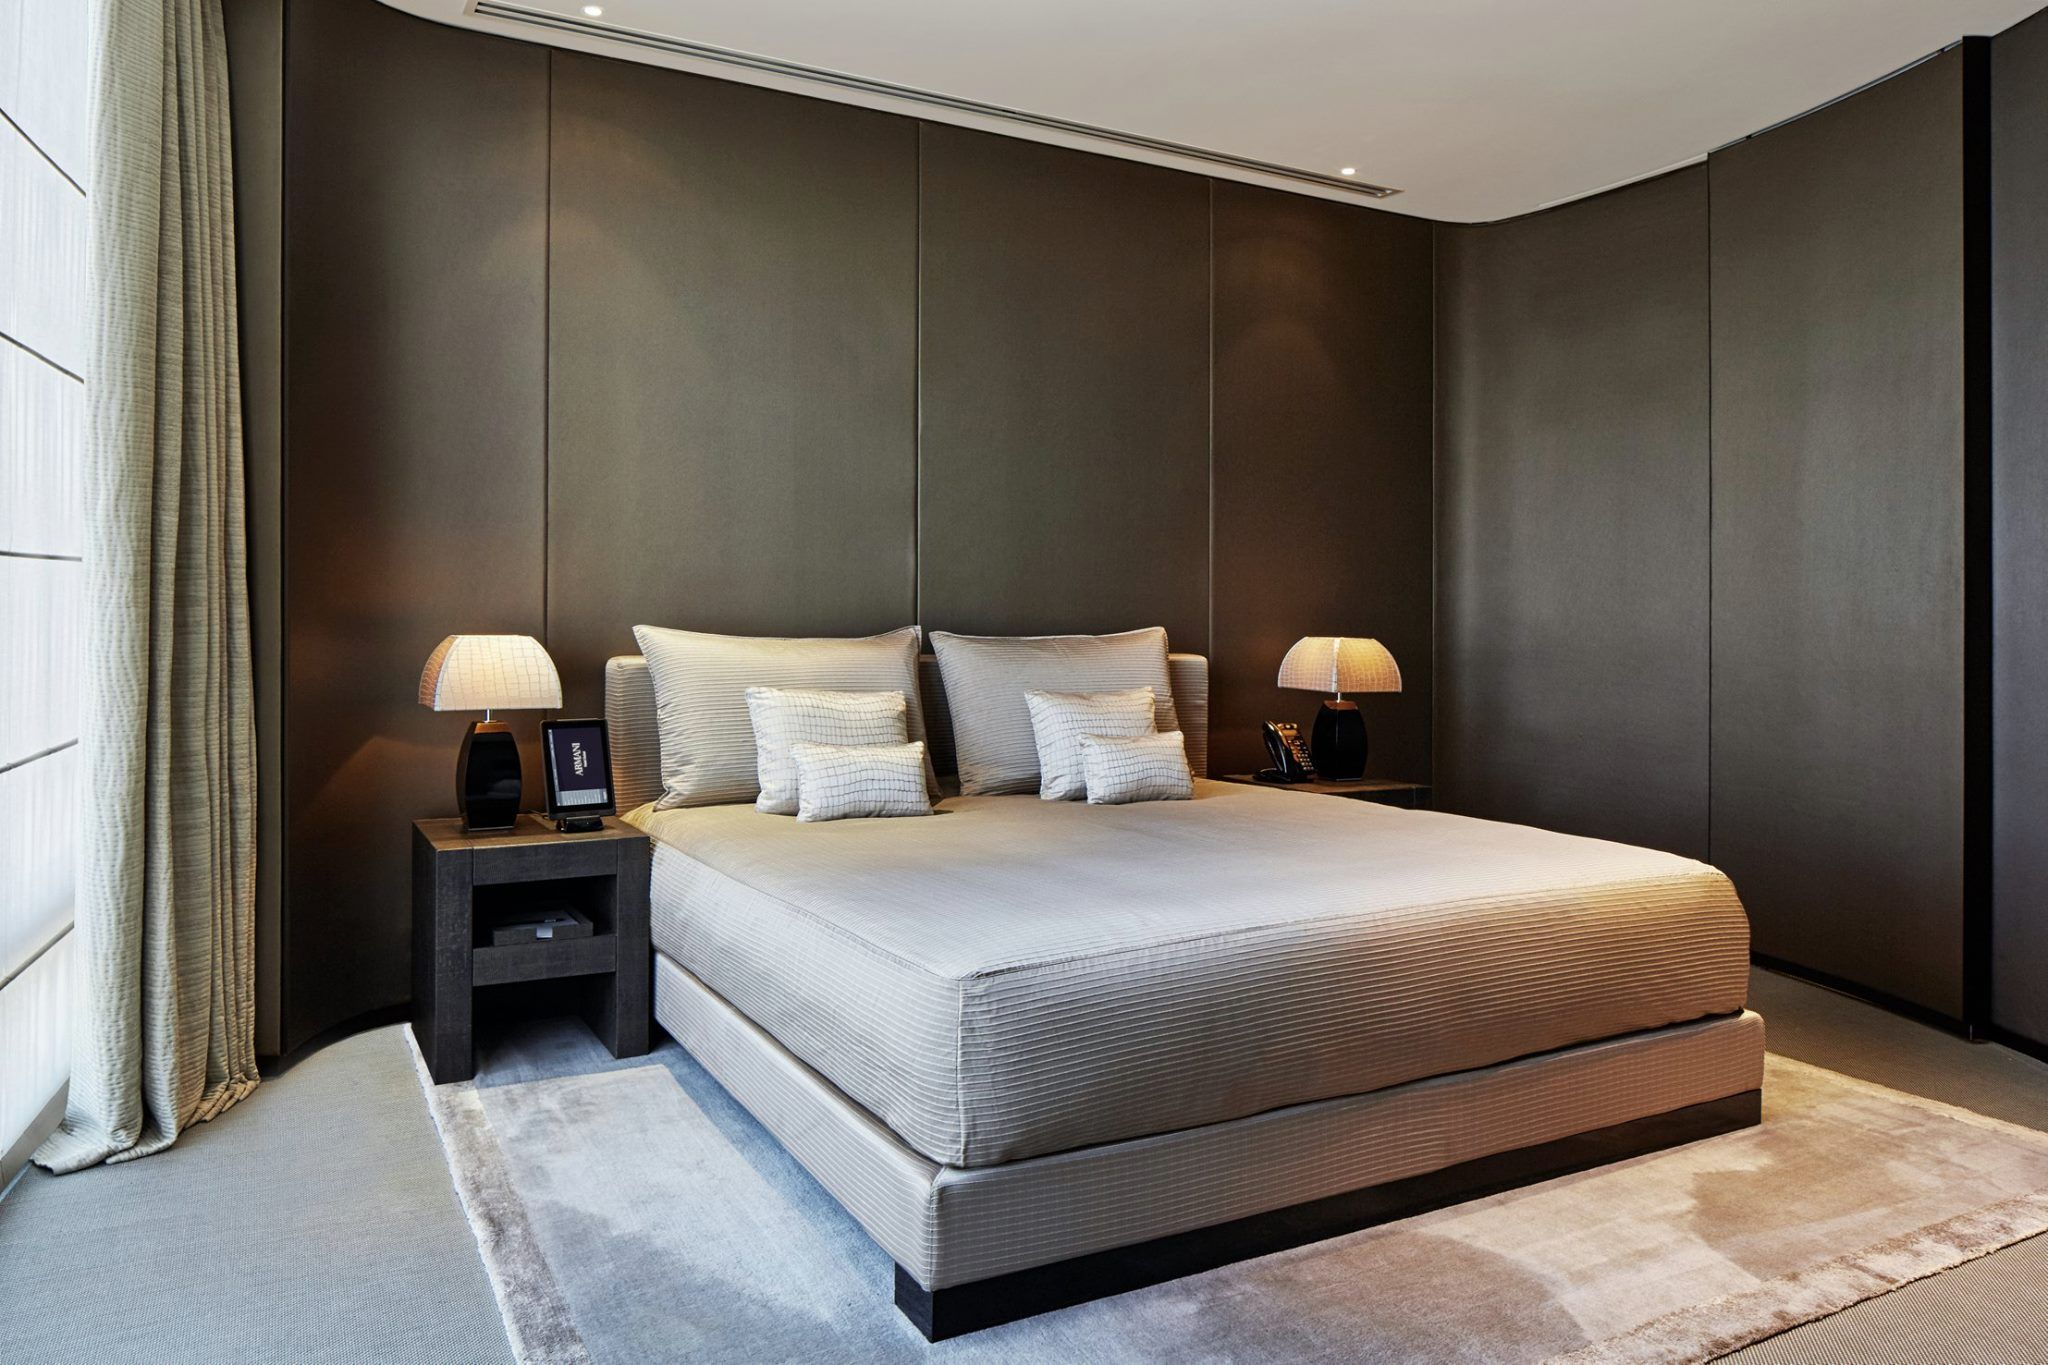 pin by pimkae tinna on bedrooms armani hotel armani hotel dubai rh pinterest com